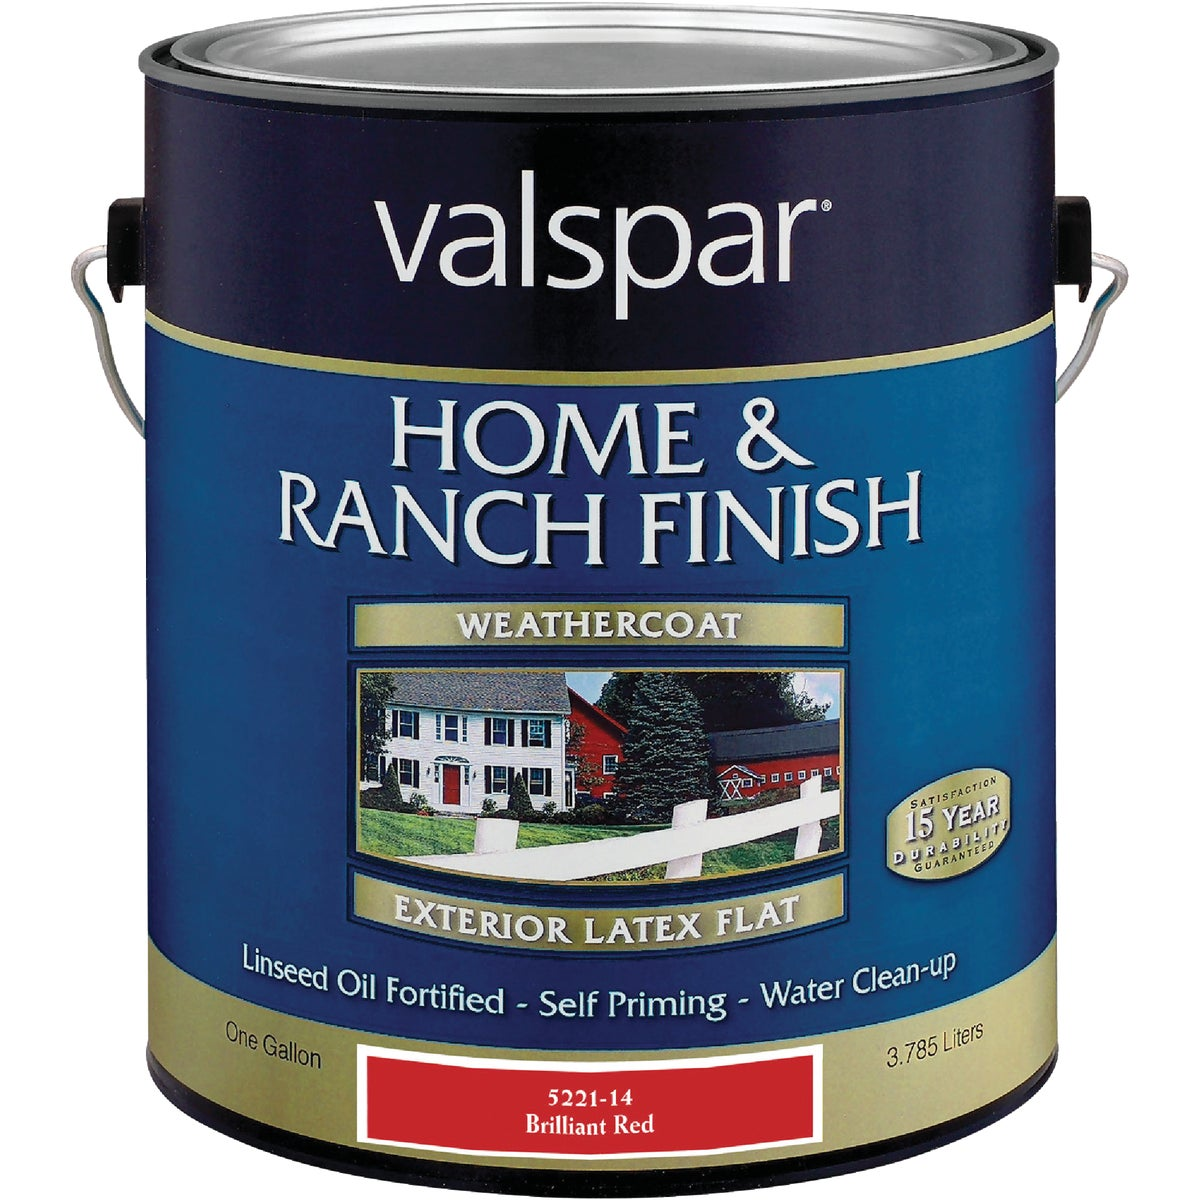 LTX BRLNT RED BARN PAINT - 018.5221-14.007 by Valspar Corp